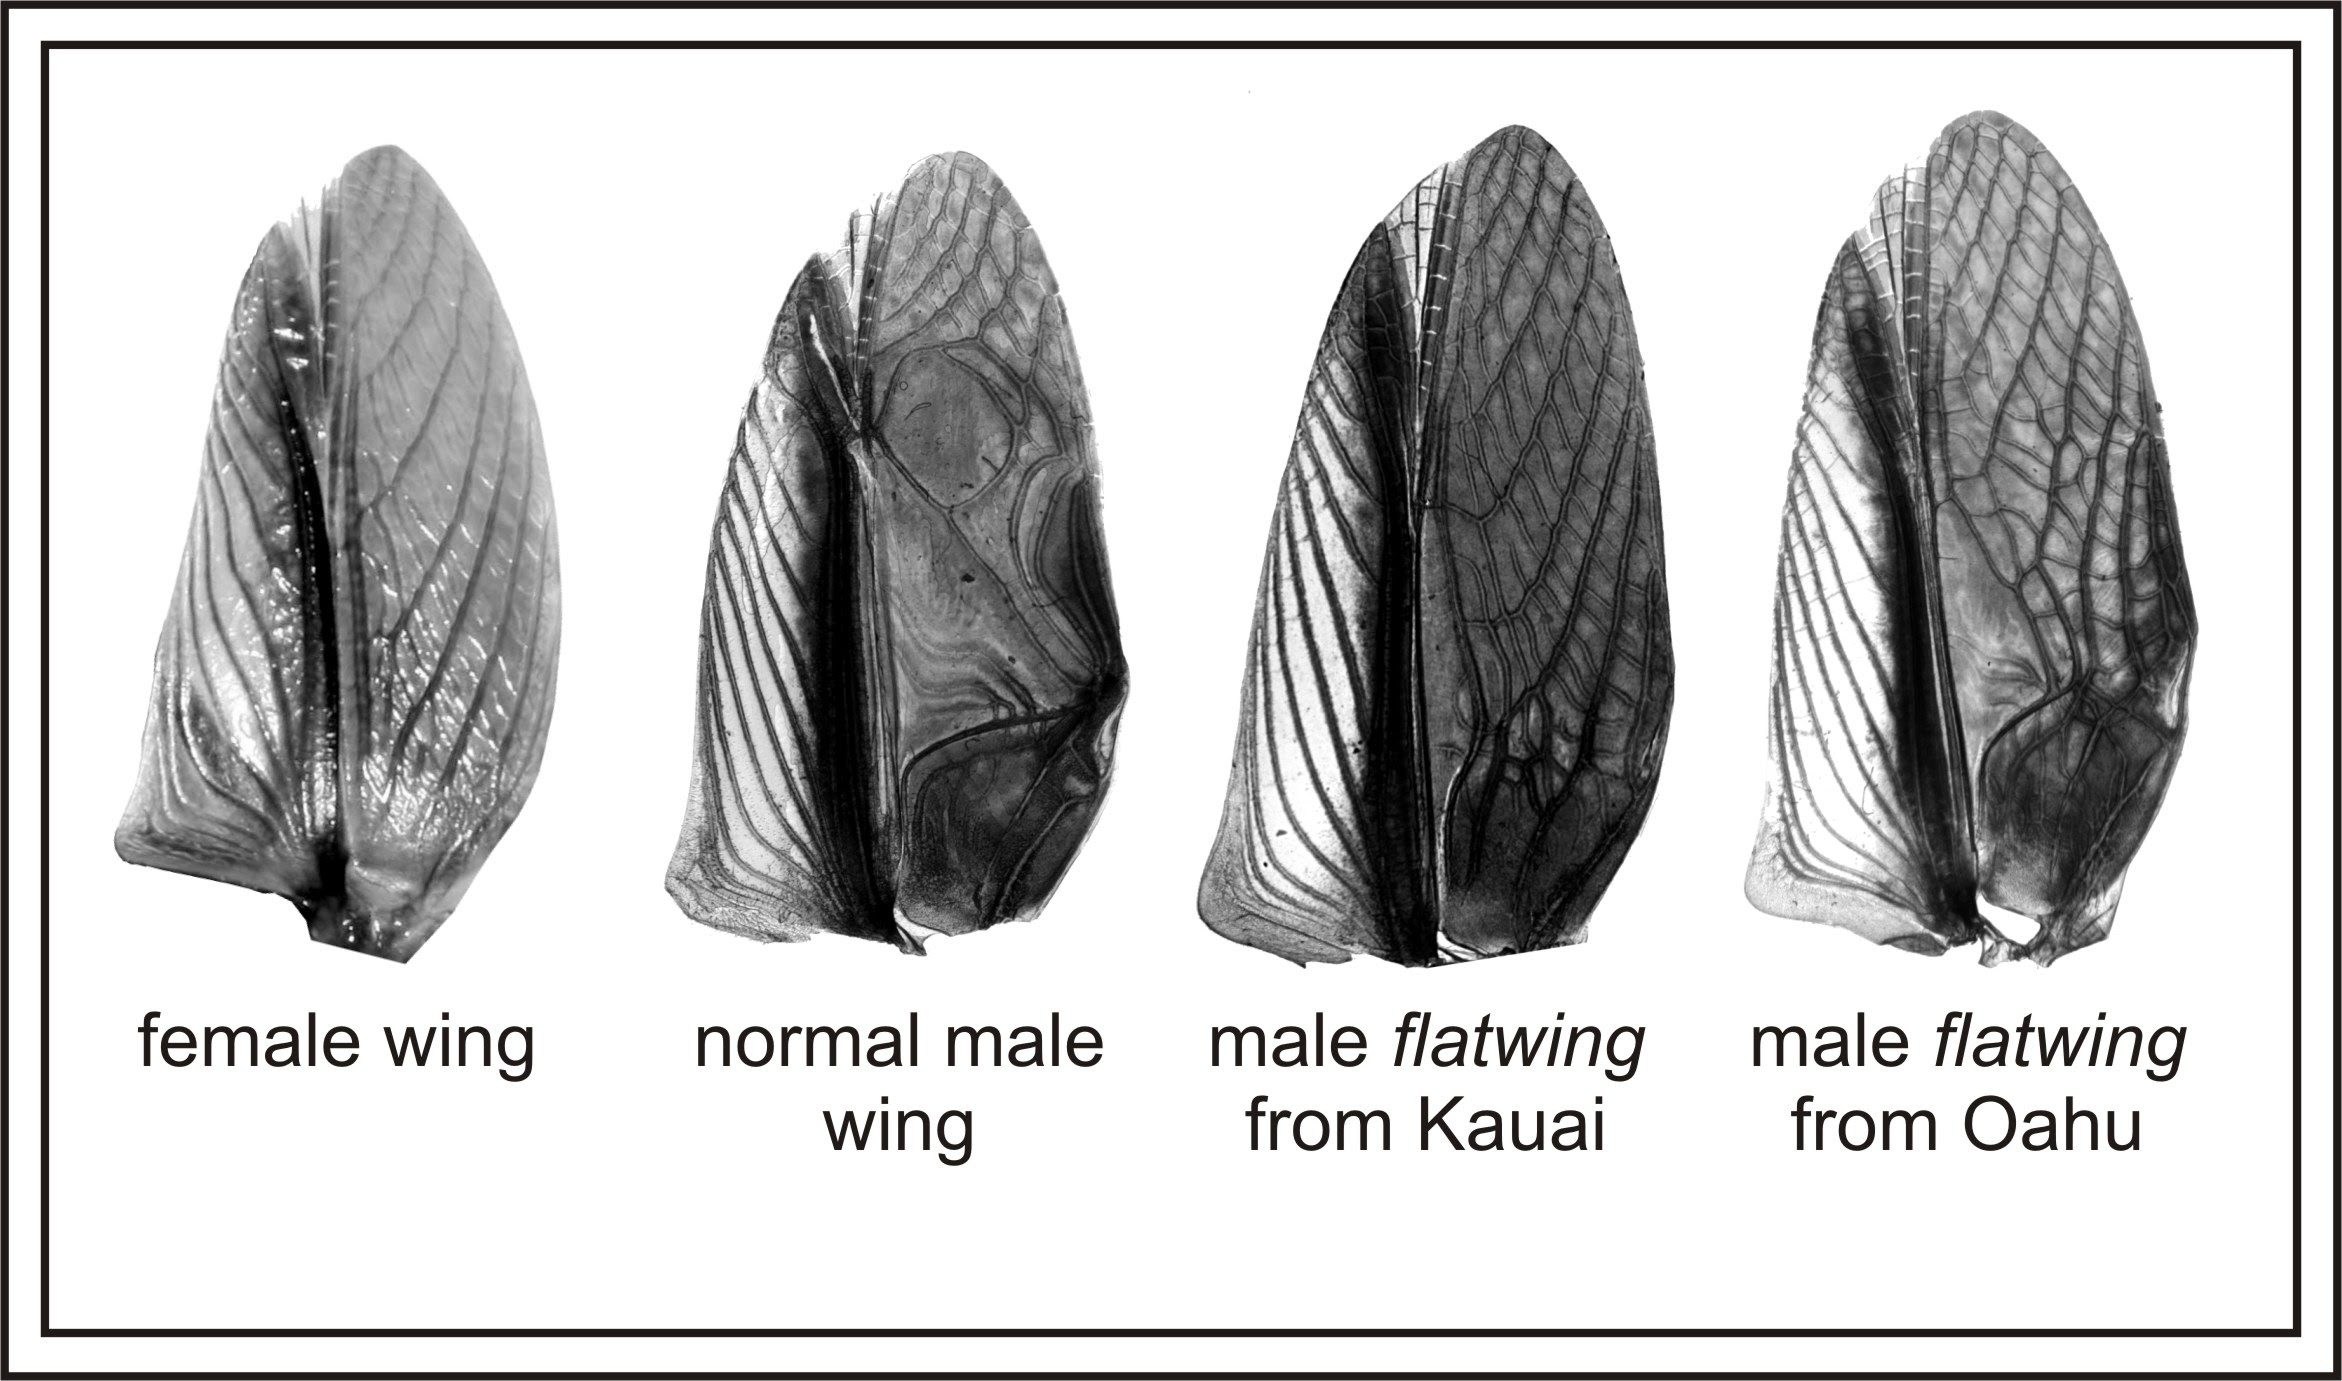 A comparison of flatwing and normal wings in  T. oceanicus. Nathan Bailey/Wikimedia Commons (CC BY 4.0)